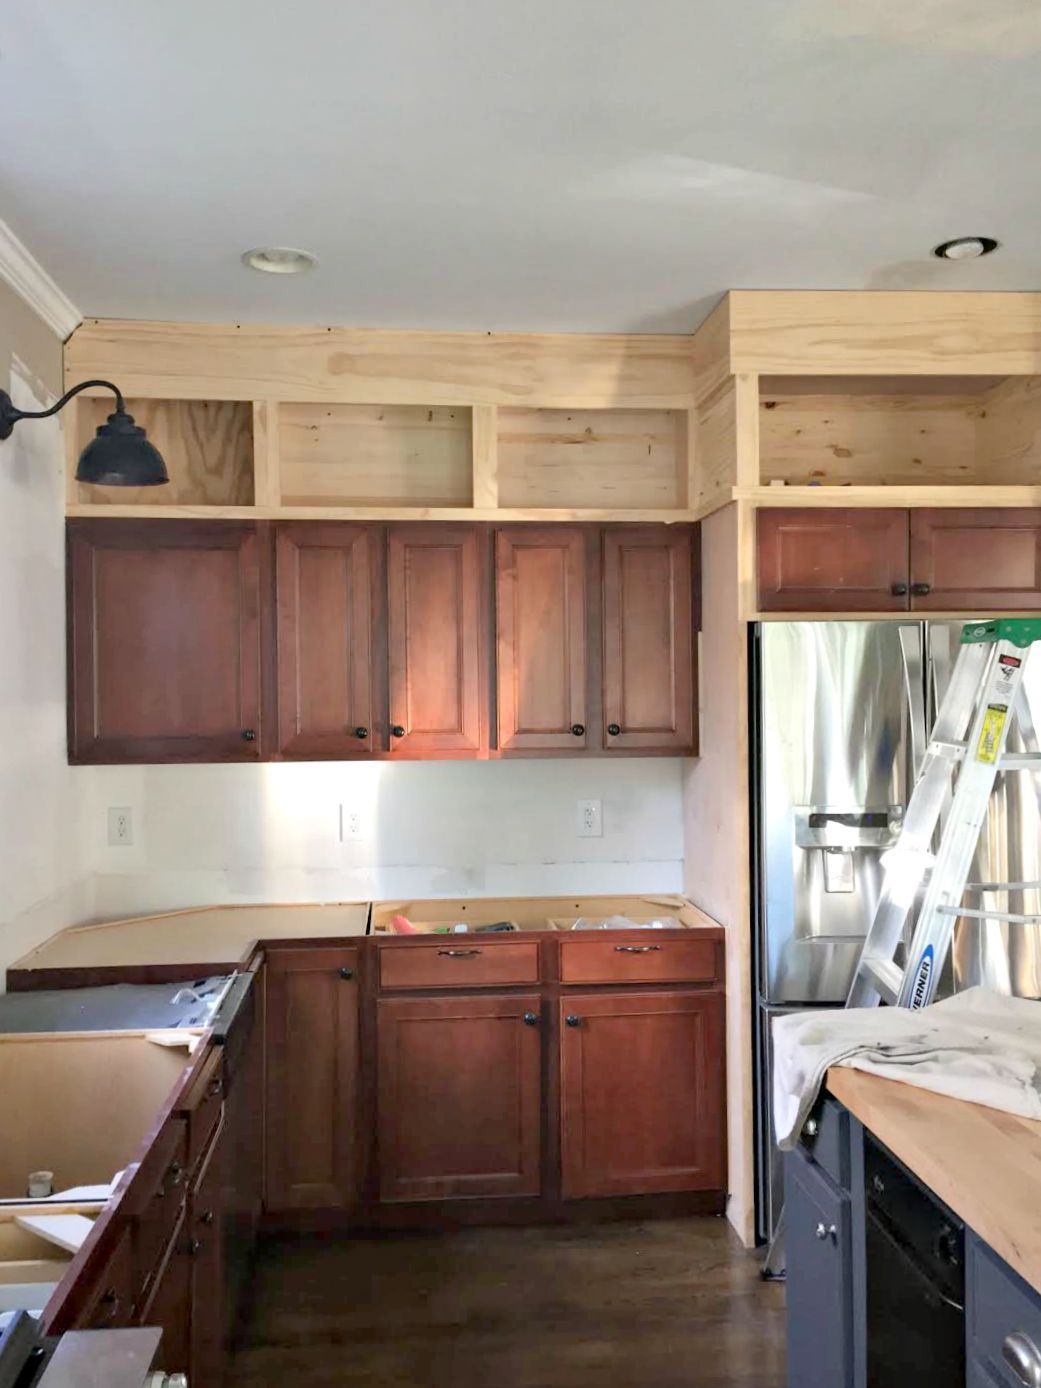 Should Kitchen Cabinets Go Up To Ceiling Building Cabinets Up To The Ceiling In 2019 House Updates